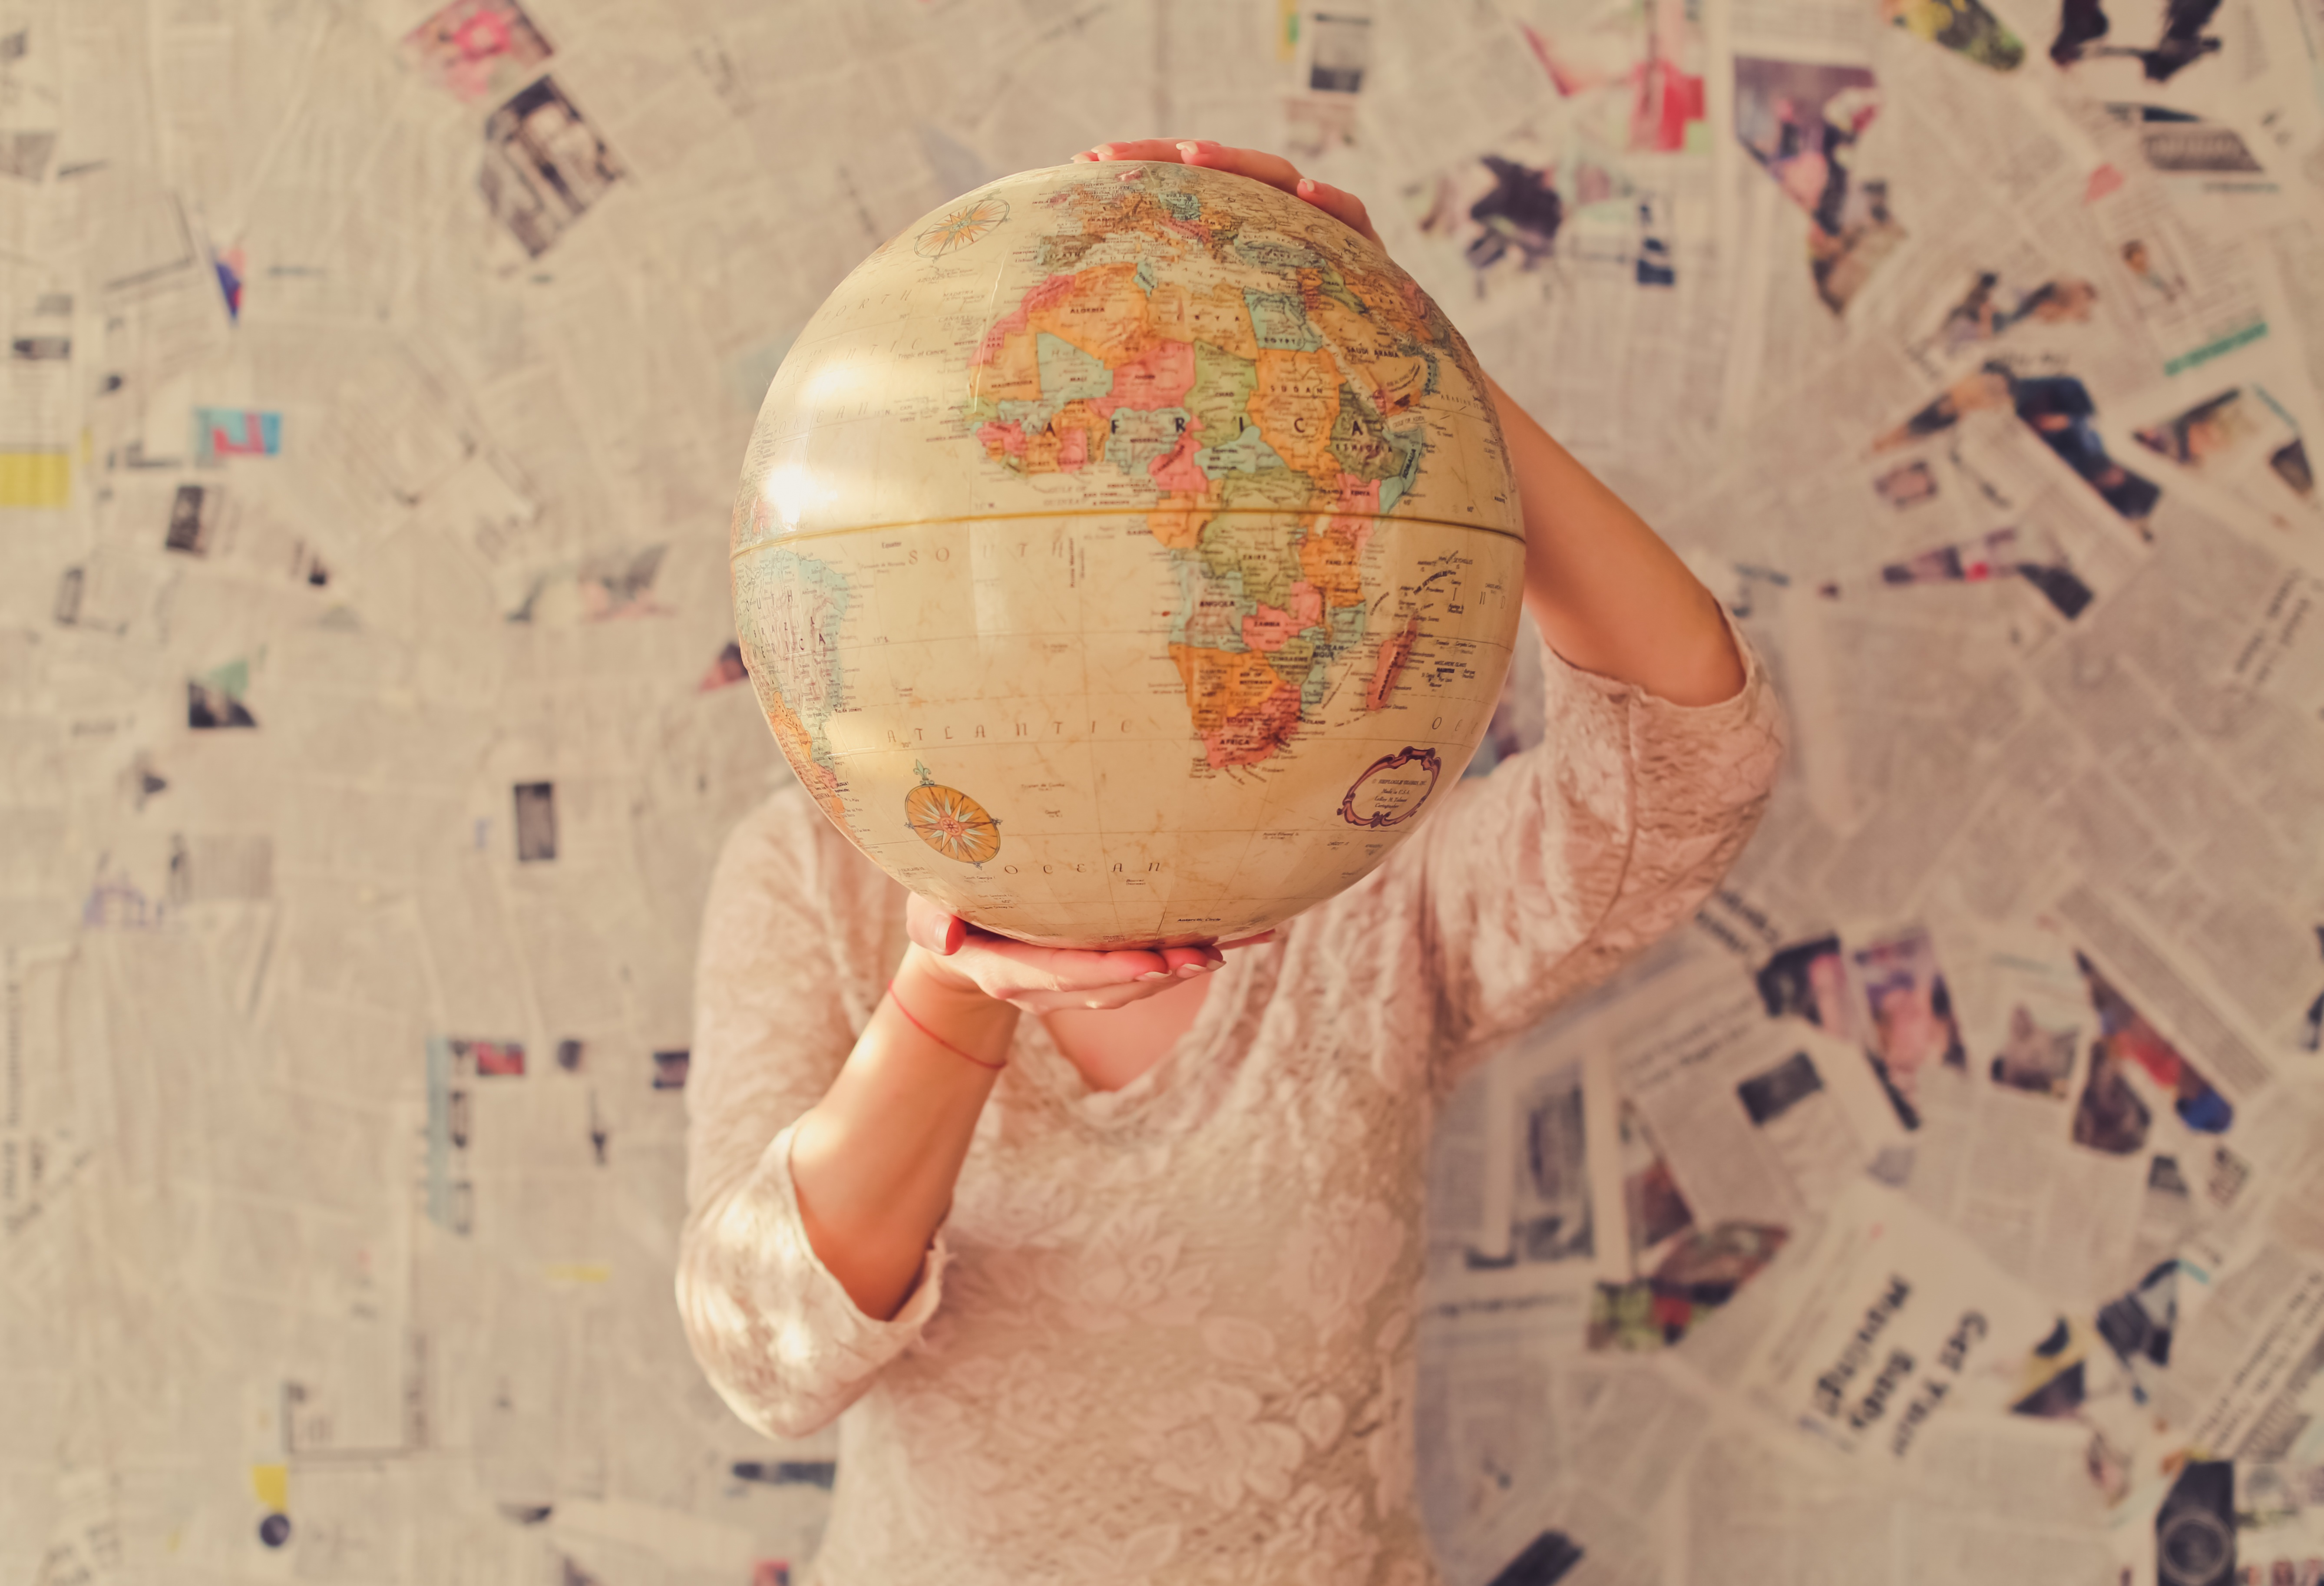 A person holding a globe.